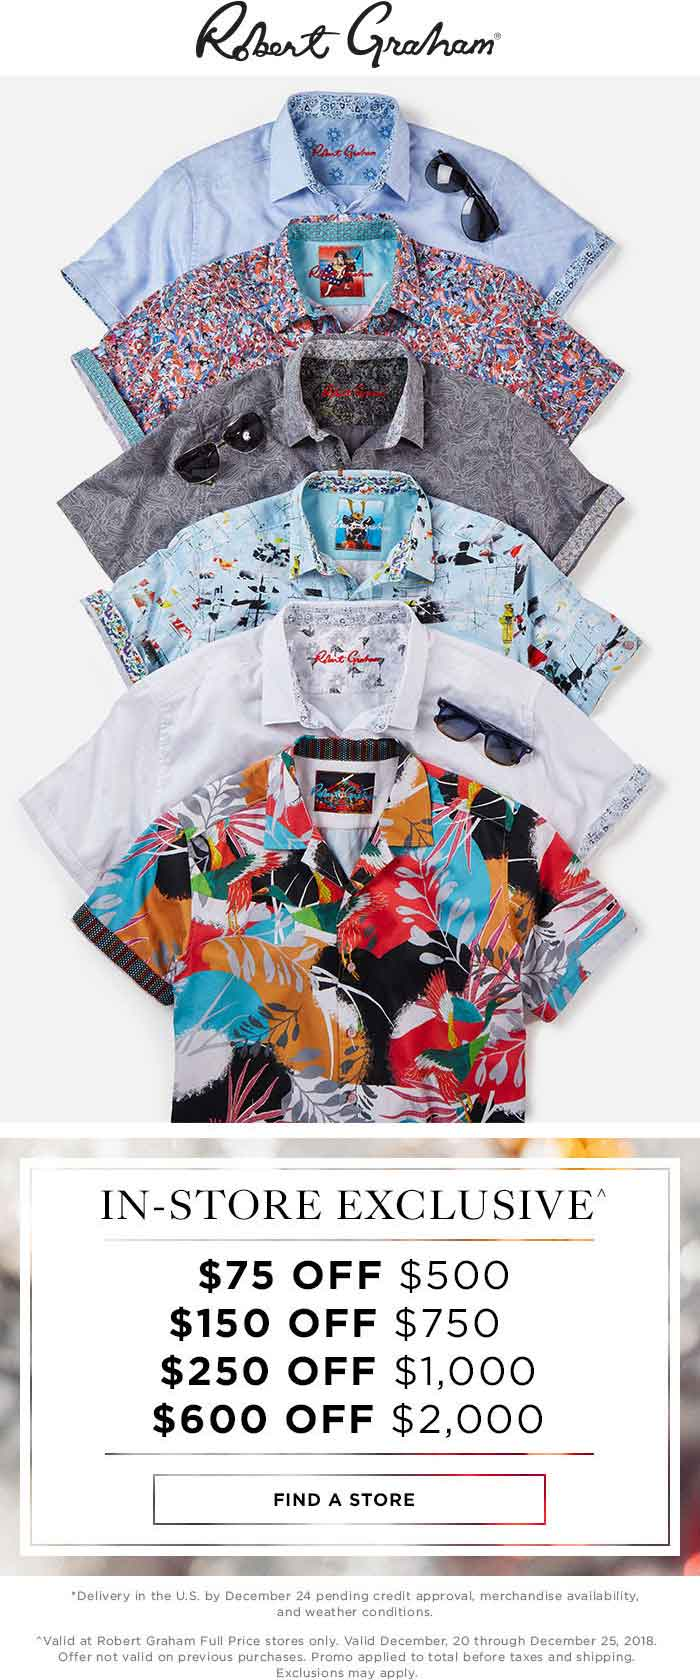 Robert Graham Coupon June 2019 $75 off $500 & more at Robert Graham